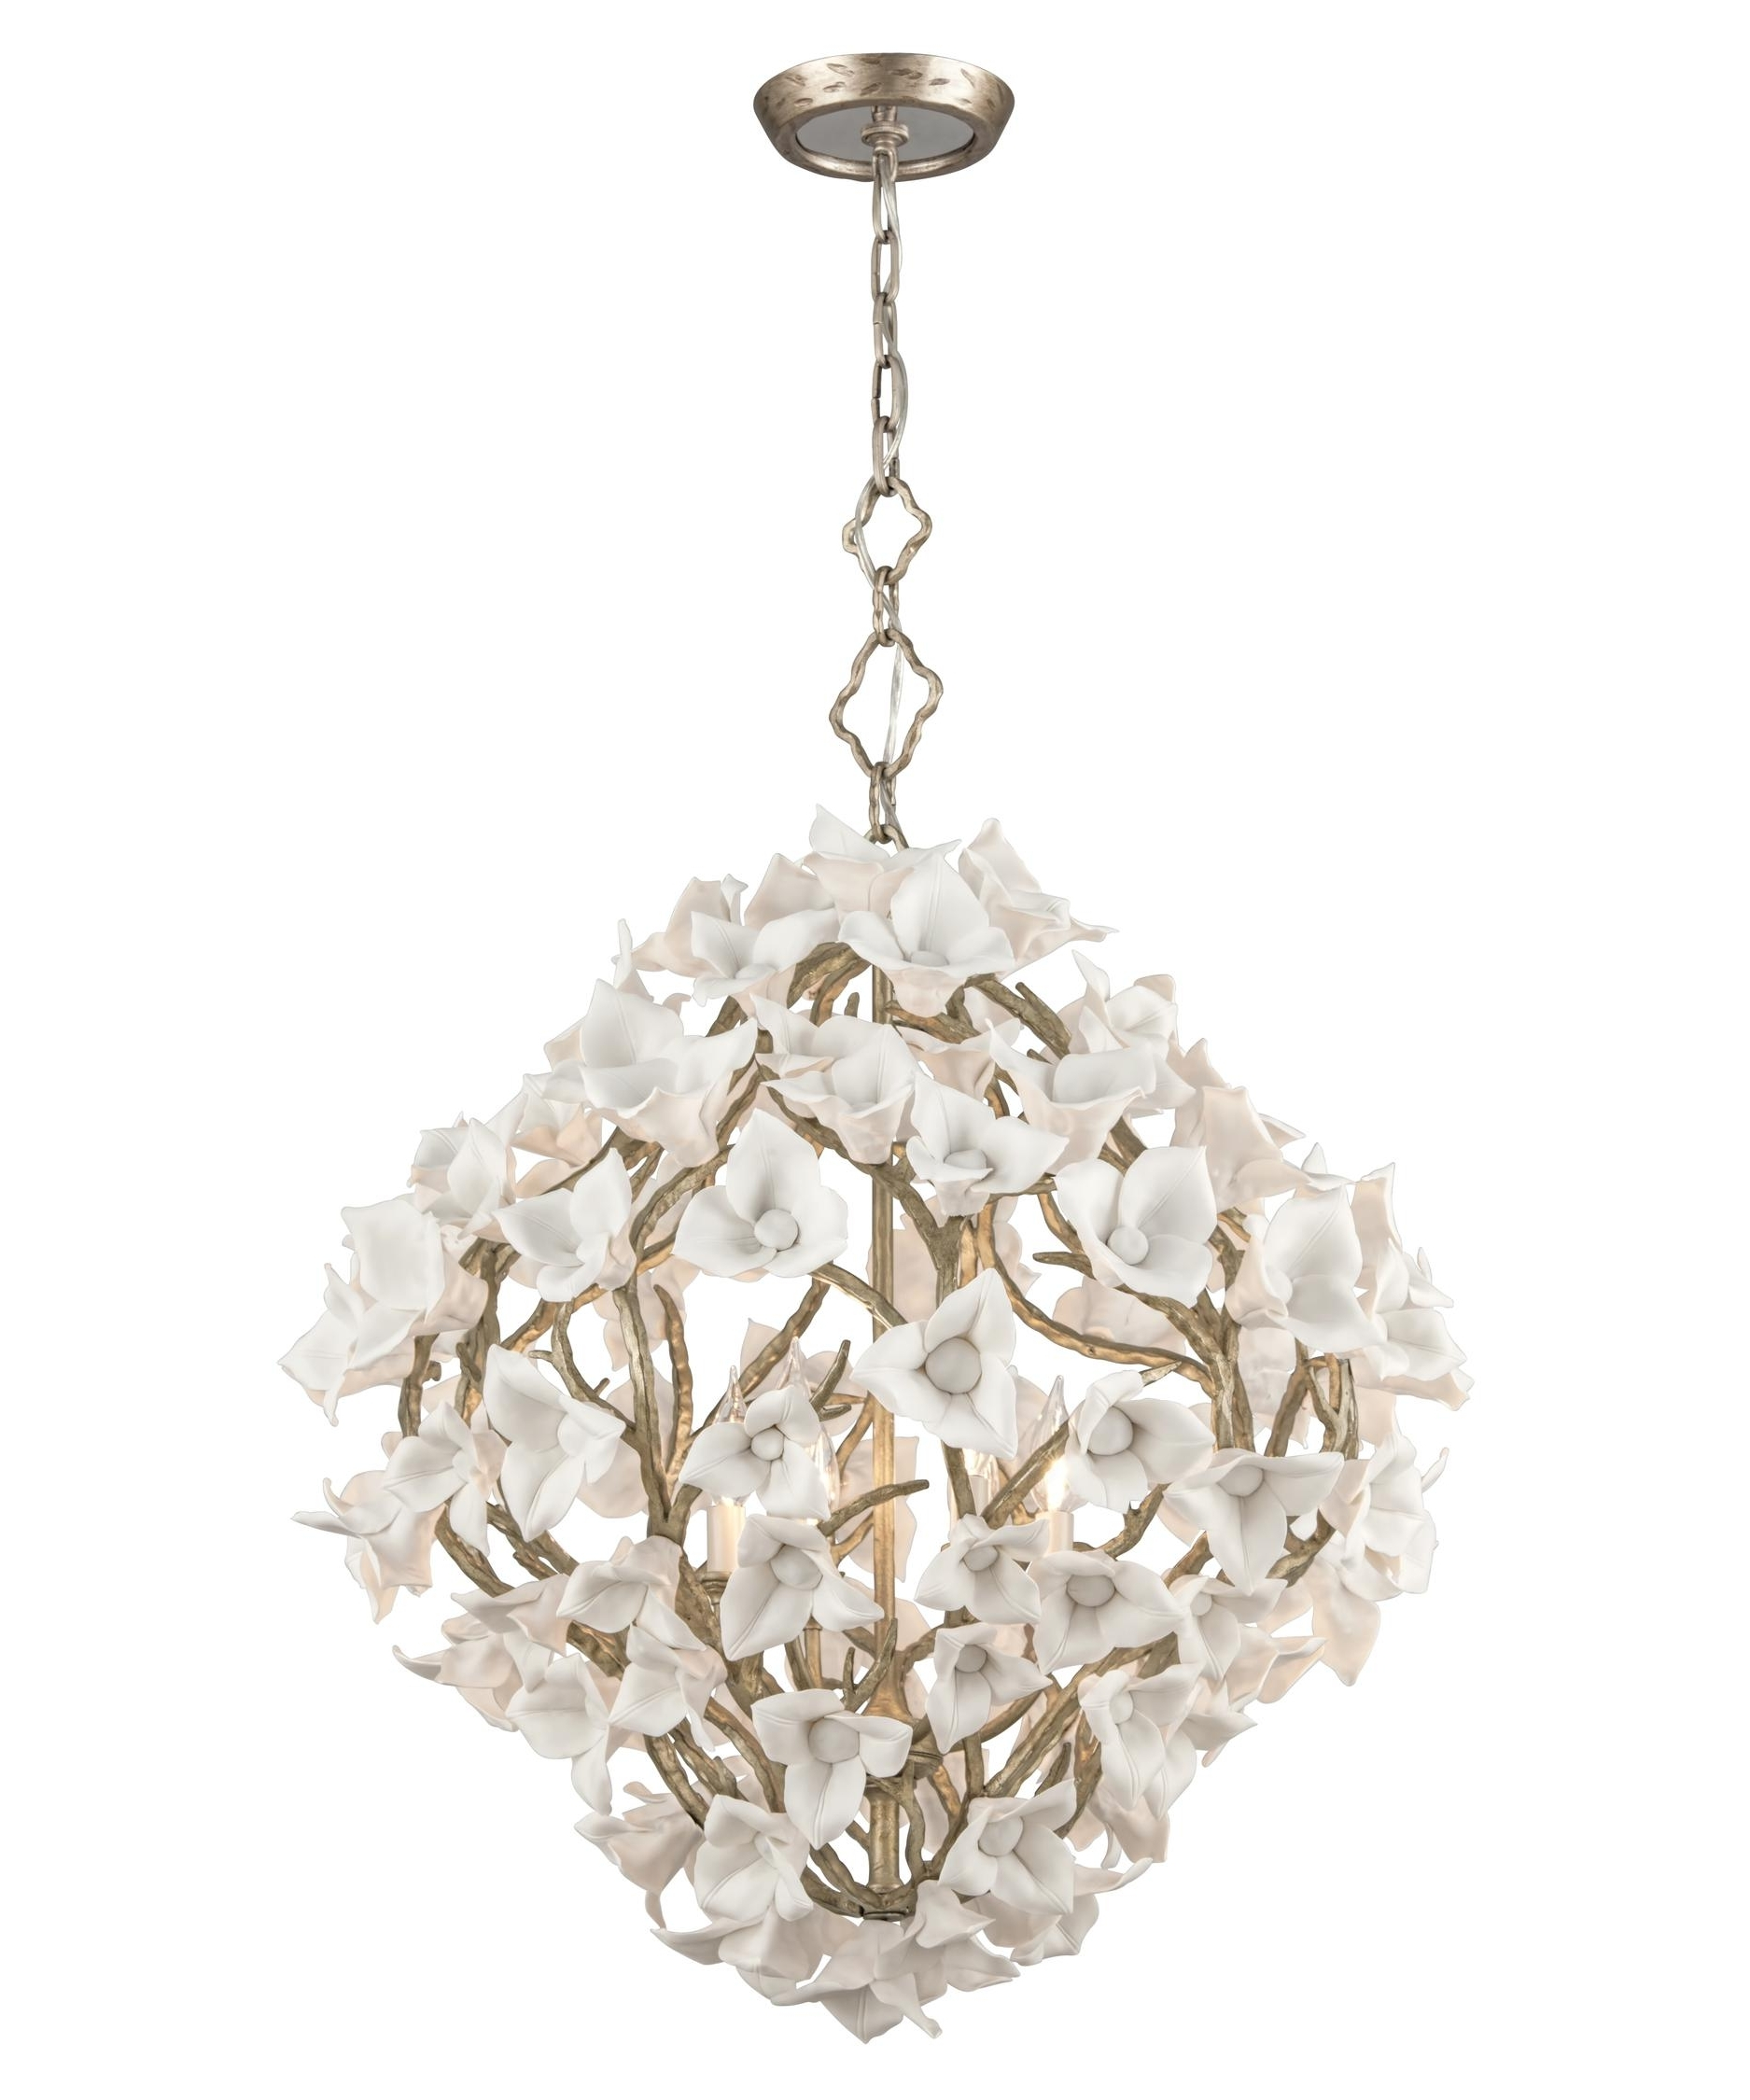 Corbett Lighting 211 46 Lily 26 Inch Wide 6 Light Large Pendant Intended For Preferred Lily Chandeliers (View 4 of 20)